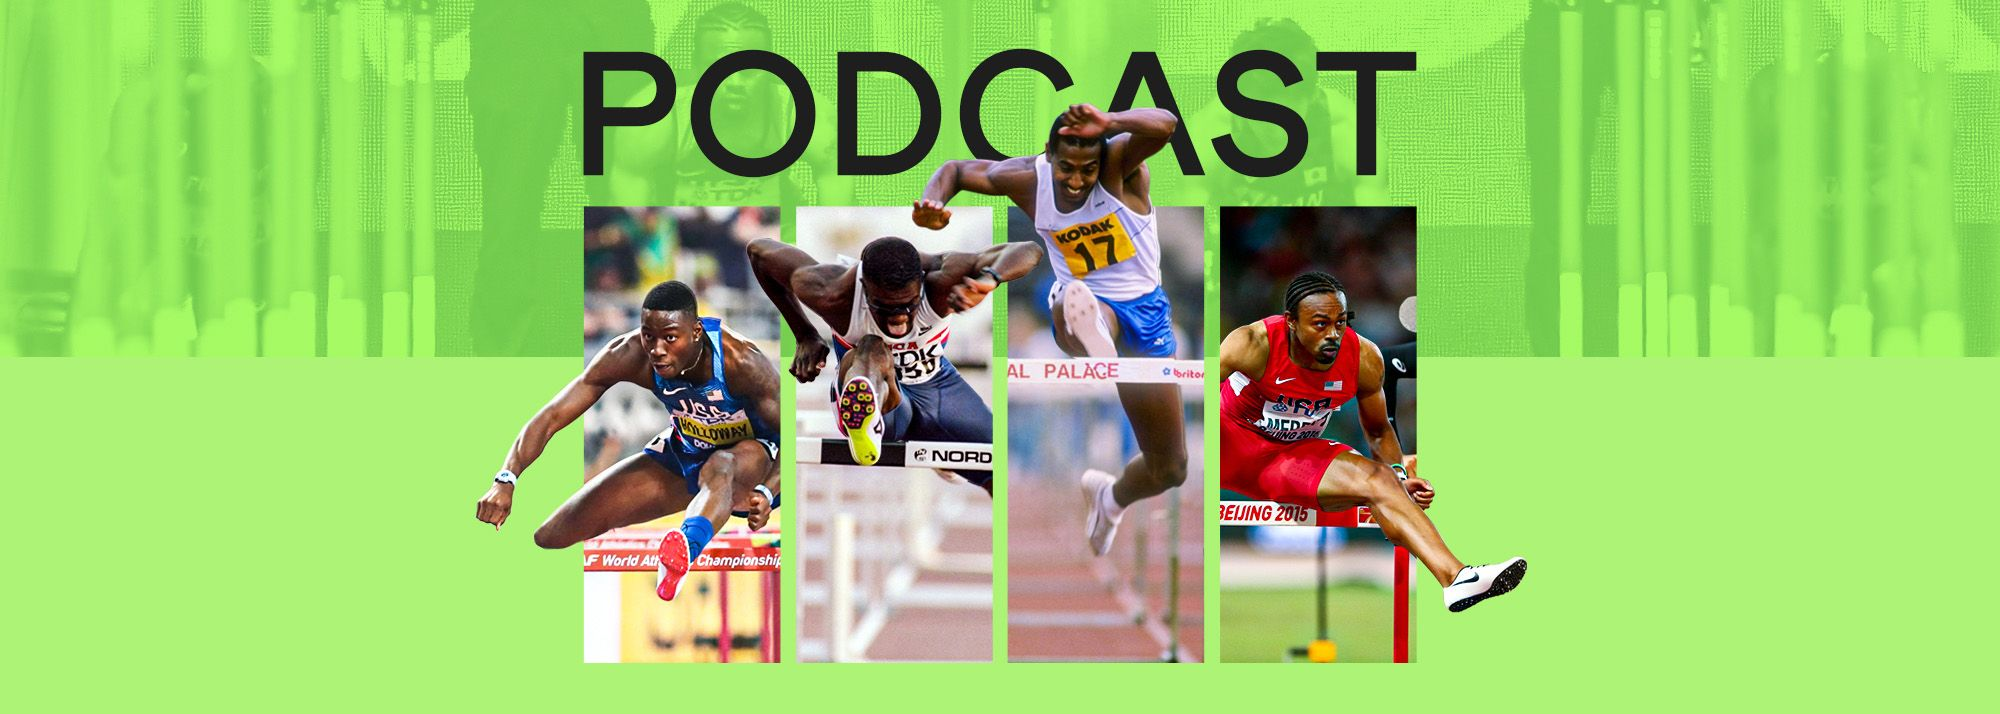 Renaldo Nehemiah, Allen Johnson, Aries Merritt and Grant Holloway recently came together virtually for a special 110m hurdles edition of the World Athletics podcast.